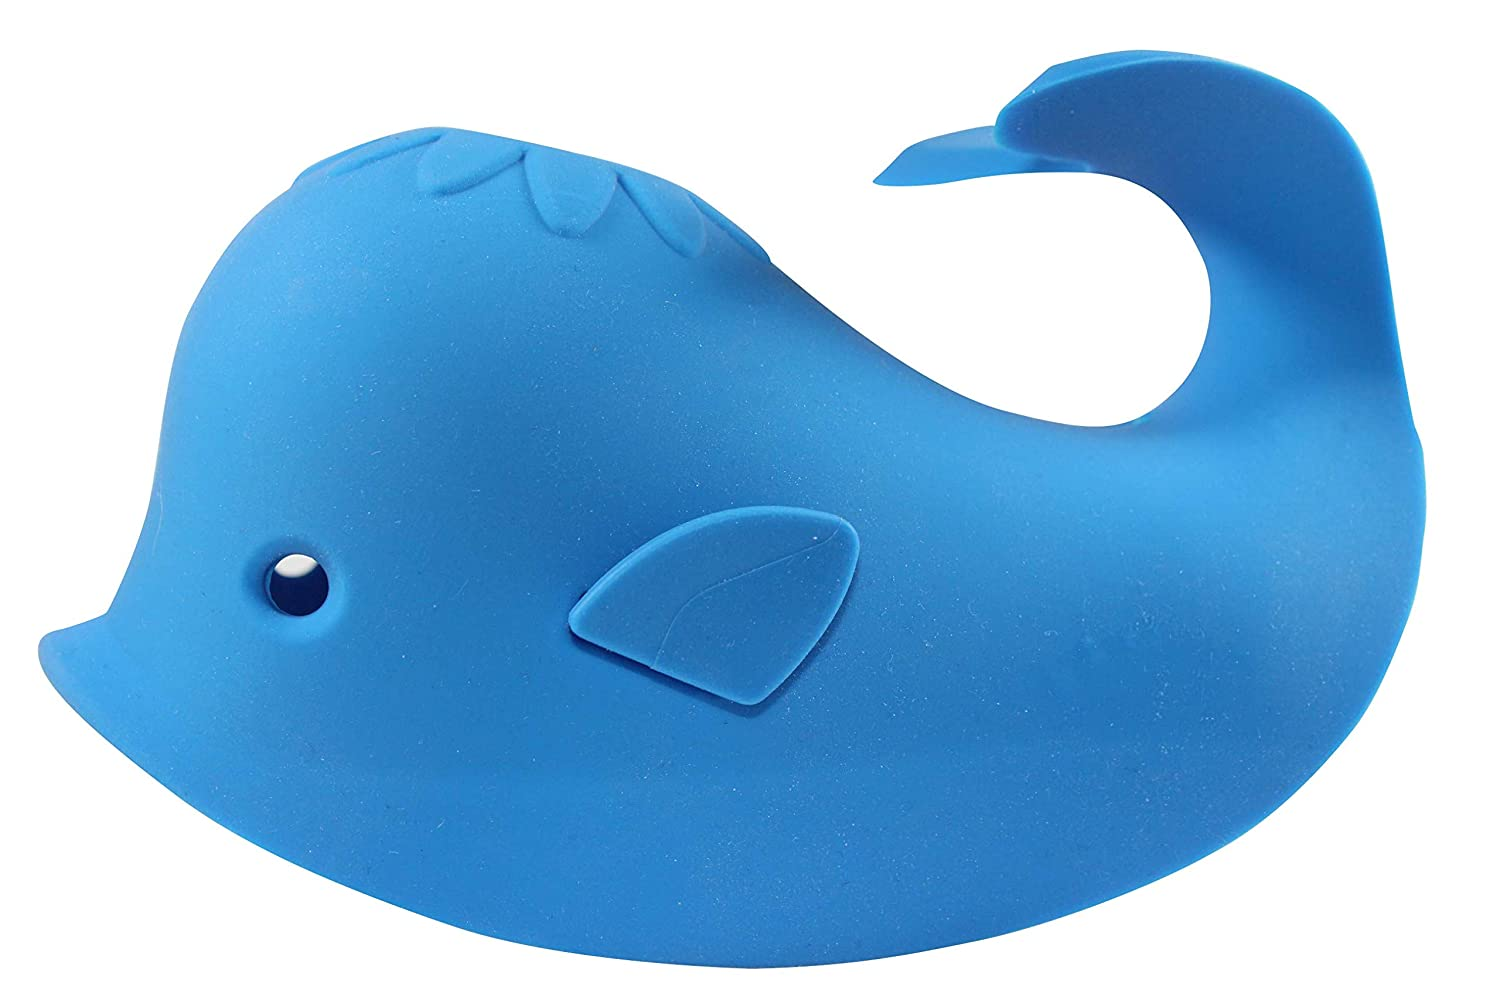 Bathtub Spout Cover for Kids - Bath Faucet Tub Covers Protects Baby During Bath Time While Being Fun. Cute Soft Whale Making for Enjoyable Safe Baths Your Child Will Love. (1 Pack, Blue)